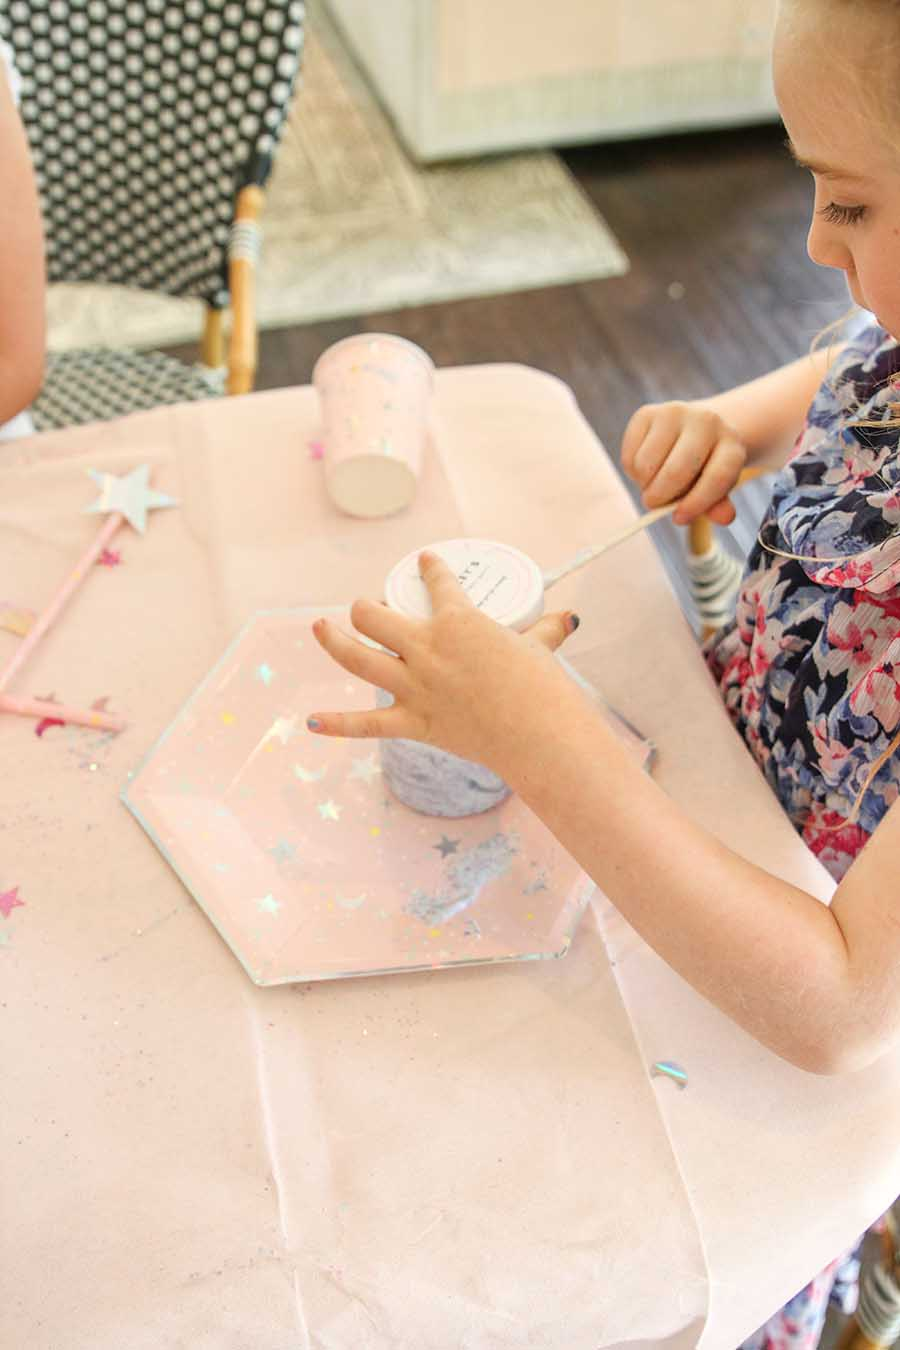 Slime Party - How to Throw a No-Mess and easy Party for Making Slime